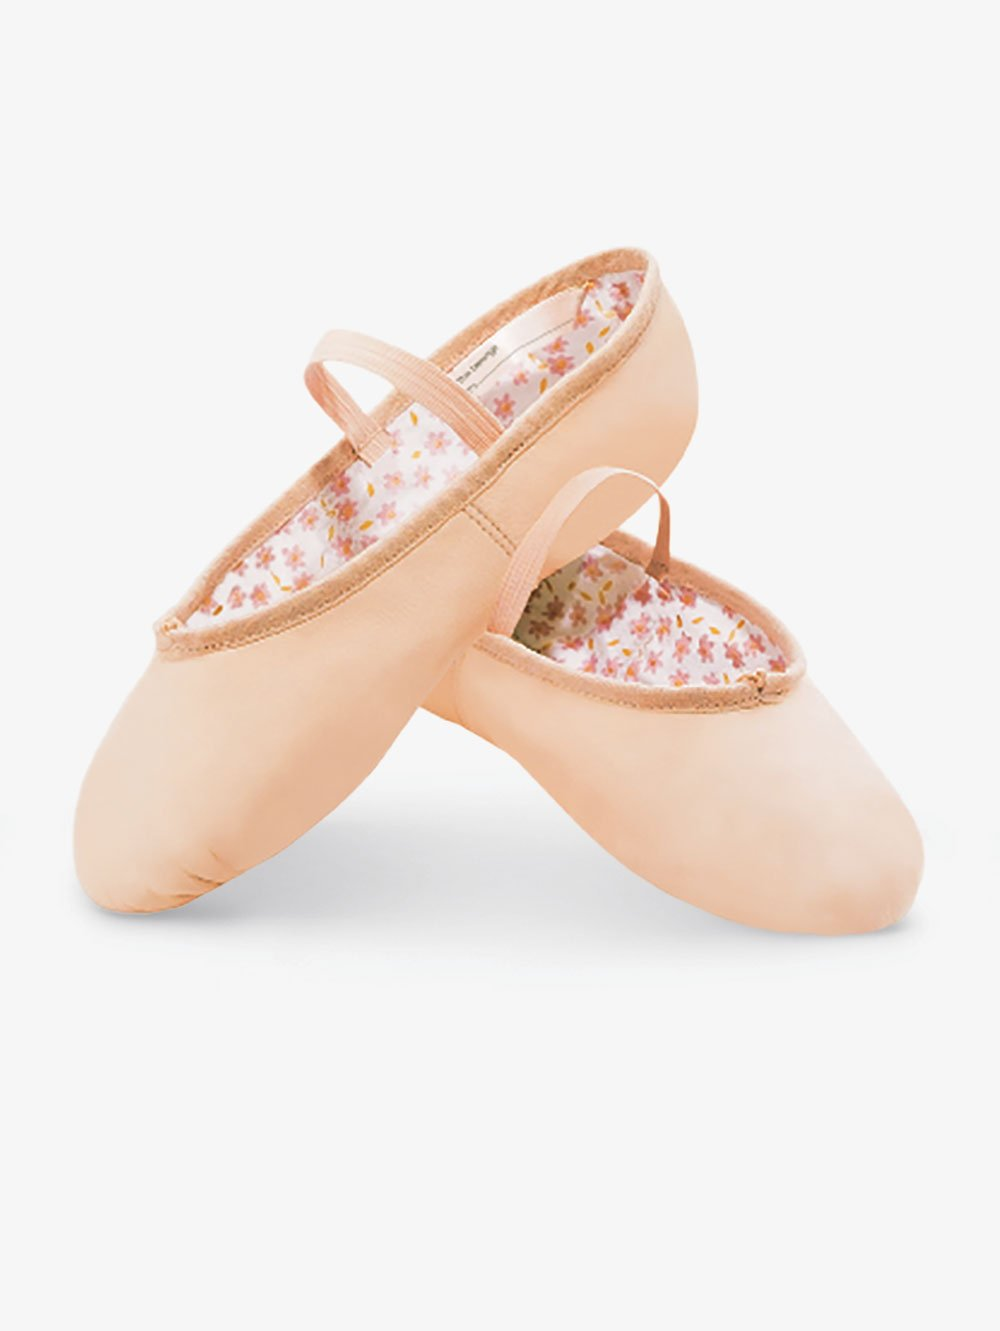 Roch Valley Ophelia Full Sole Pink Leather Ballet Shoes